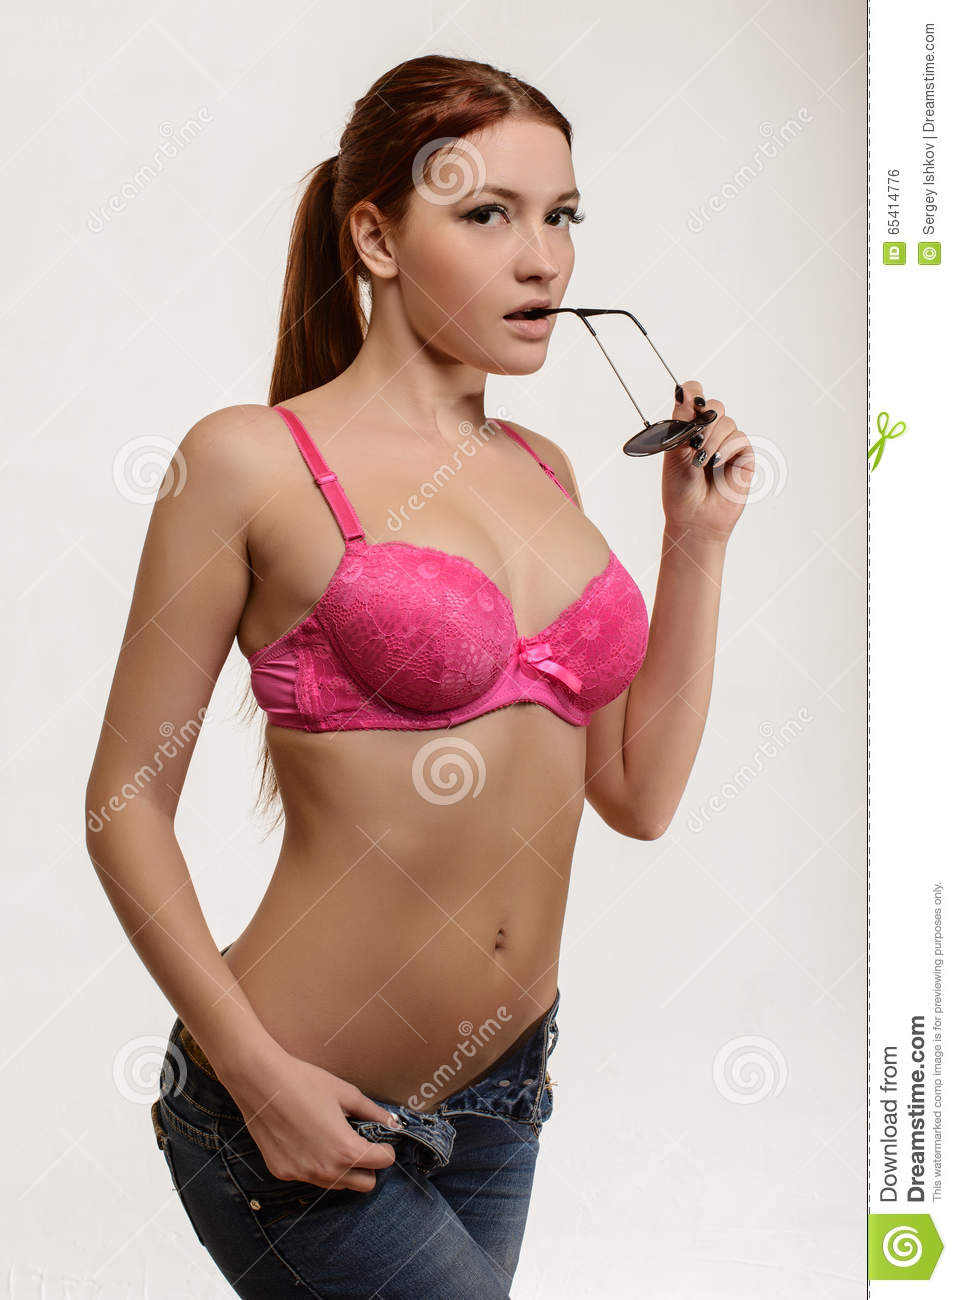 Girl In A Bra And Jeans, Sunglasses Stock Photo